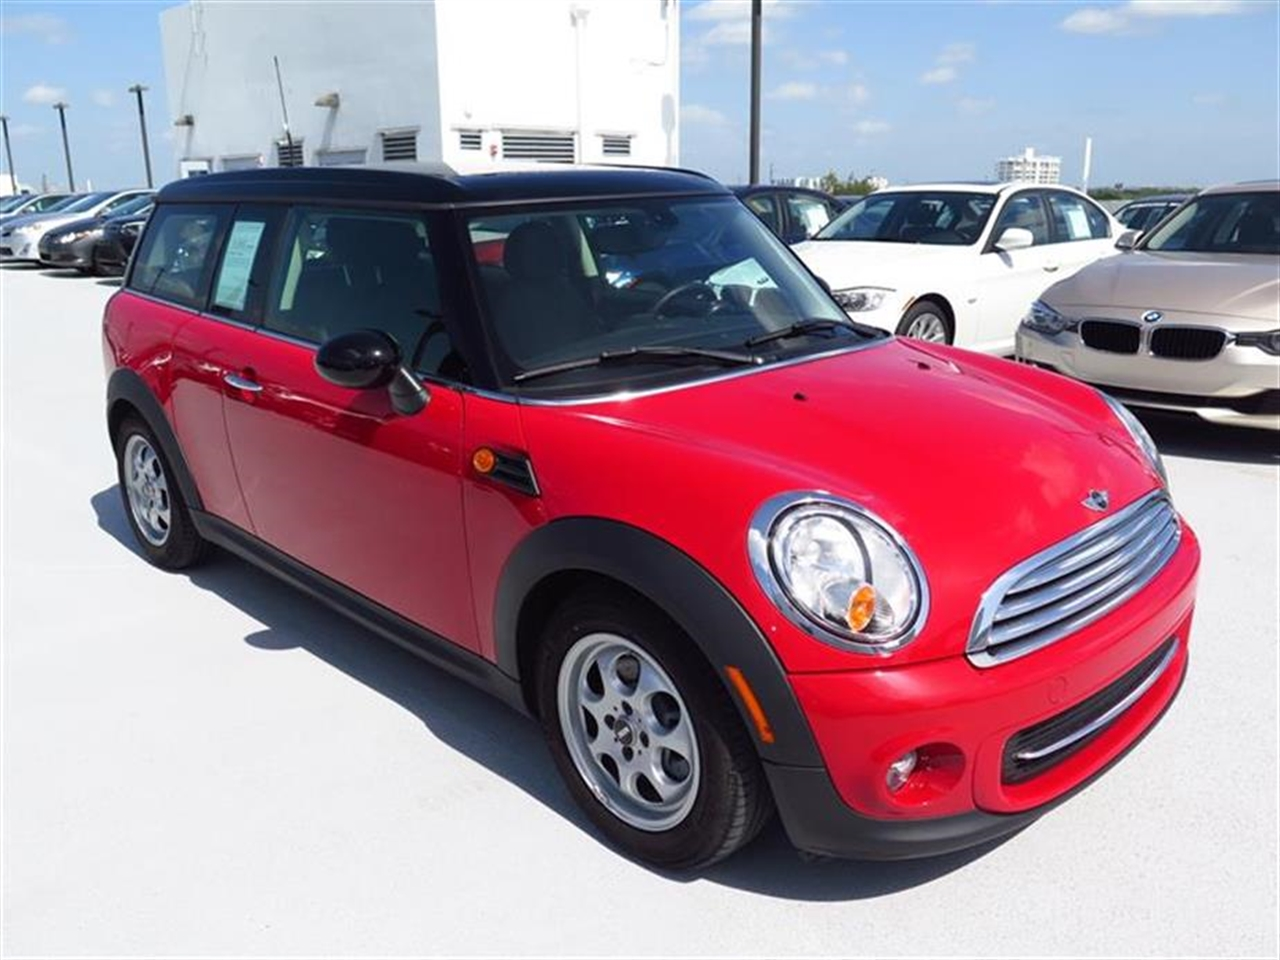 2013 MINI COOPER CLUBMAN 2dr Cpe 15736 miles 1 rear cup holder 2 12V pwr outlets 5050 spli